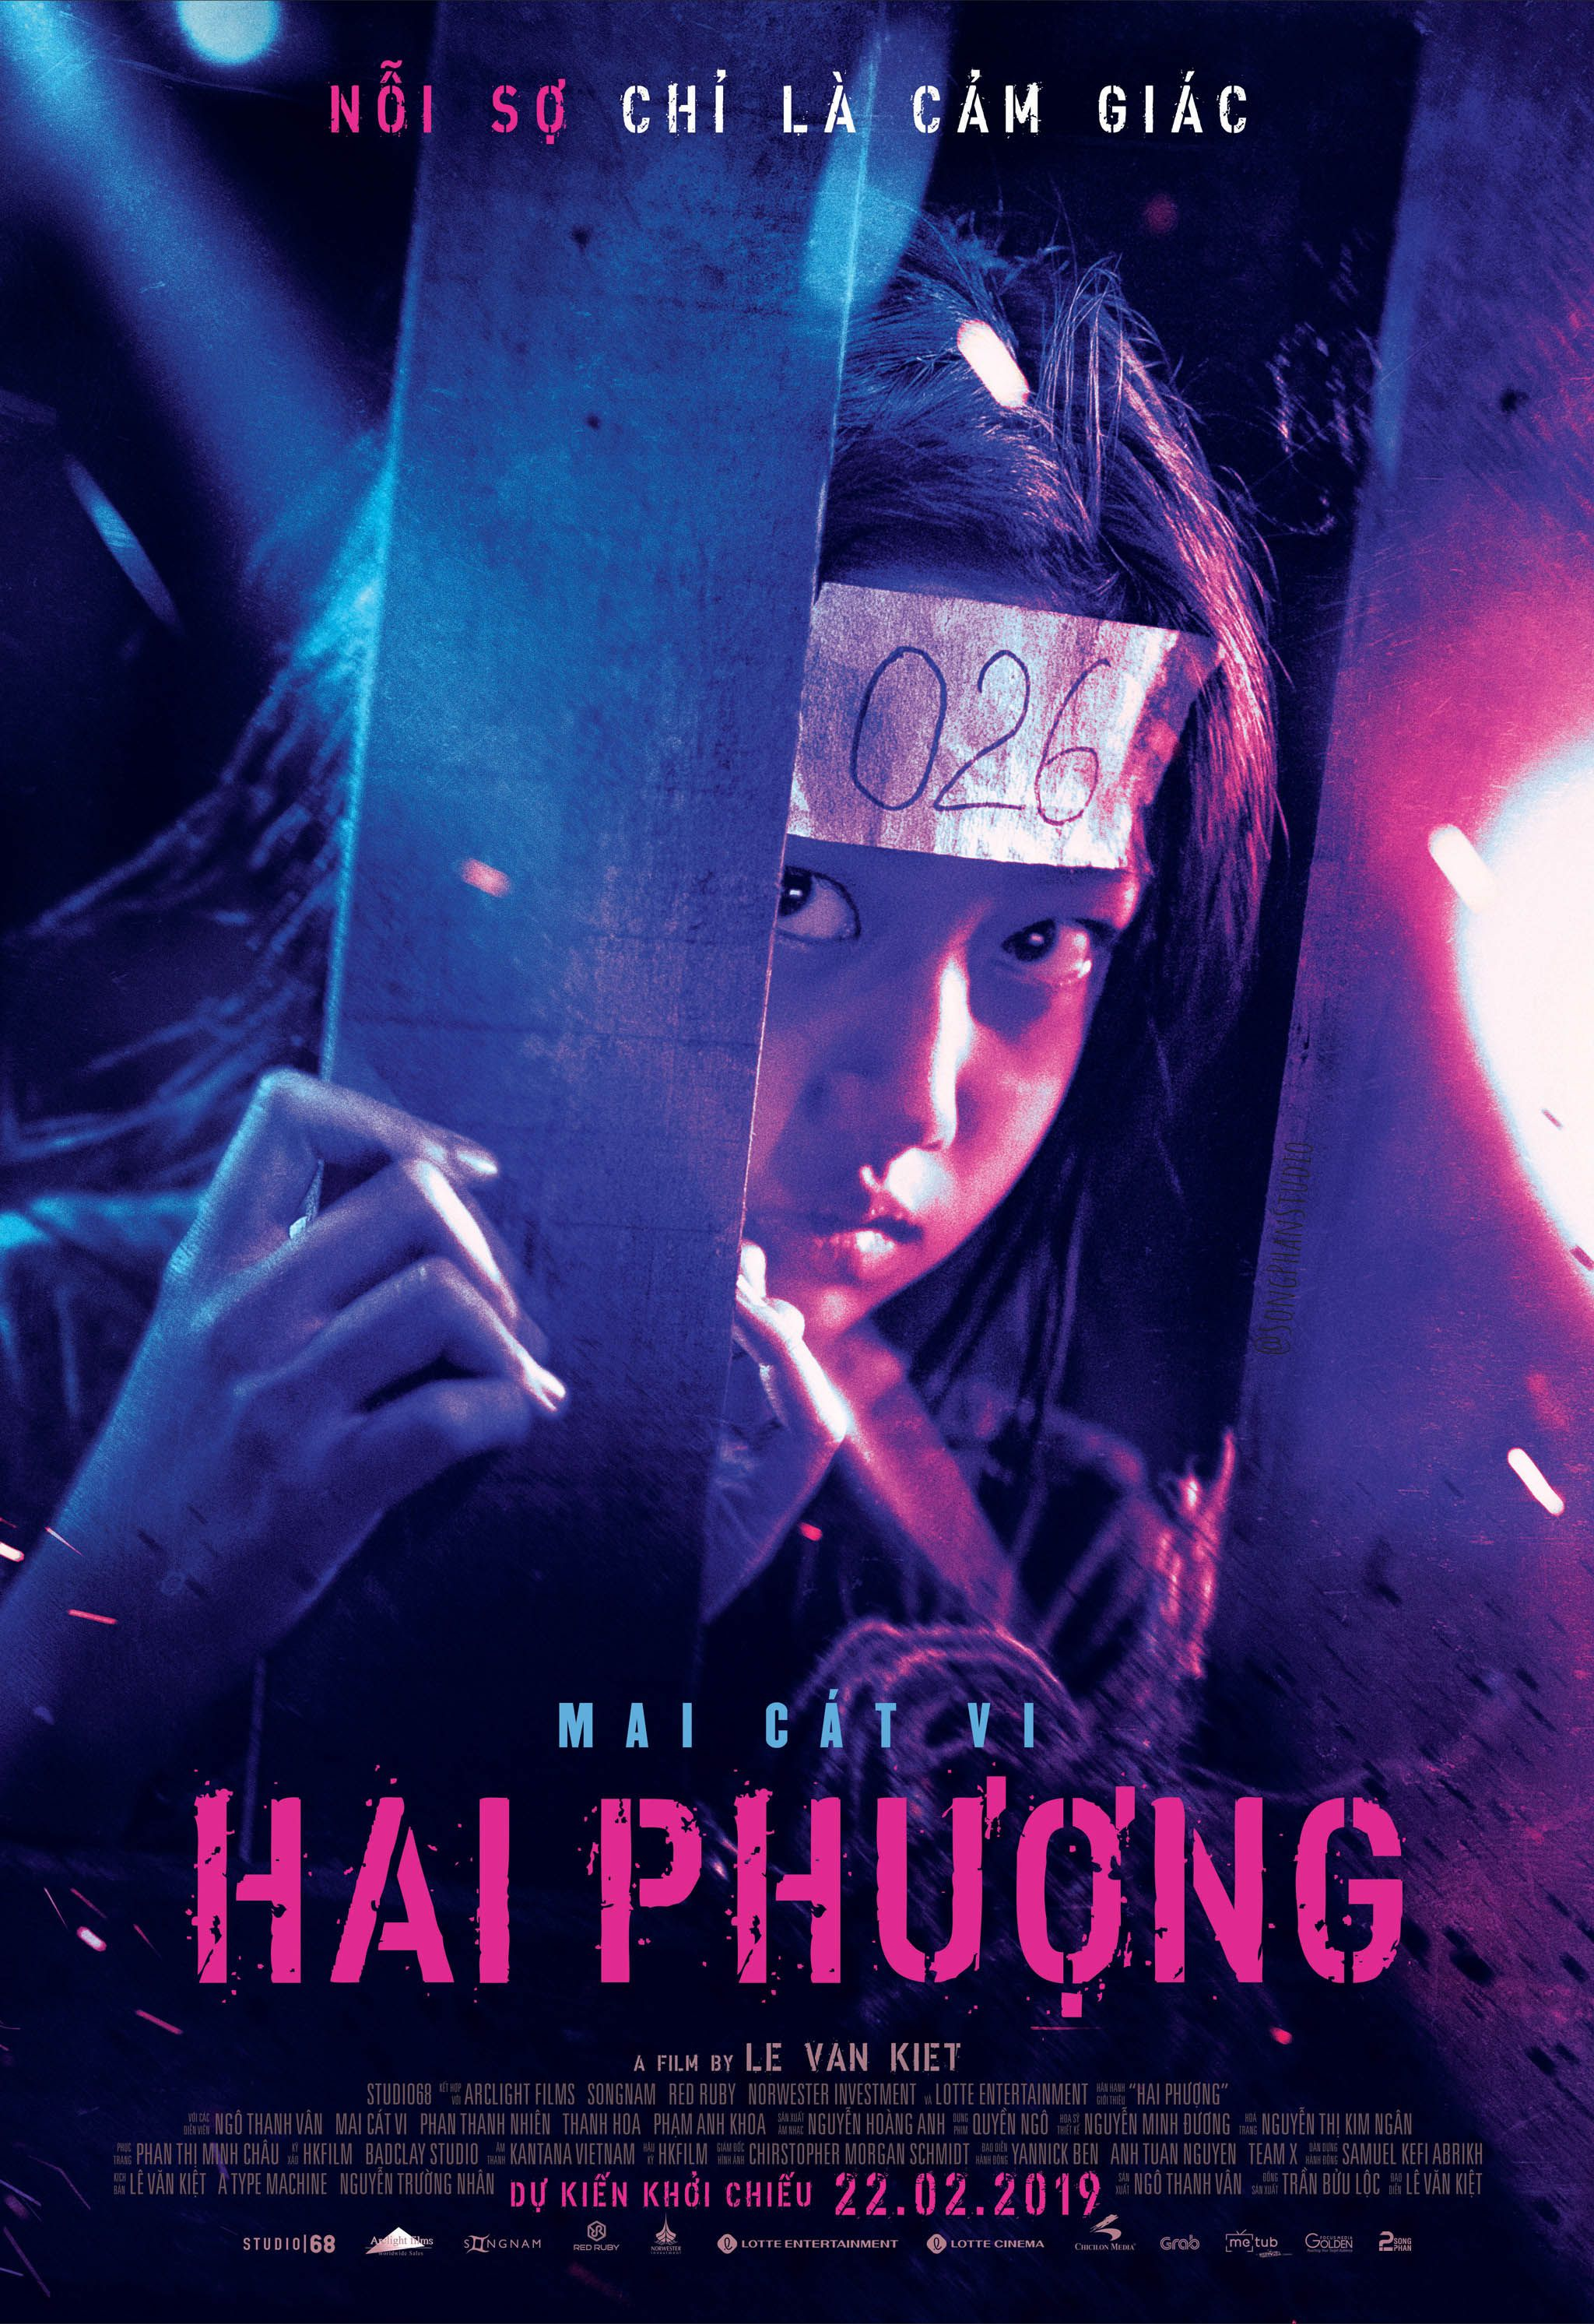 Character Poster Furie Movie Movies Steam Online Movie Artwork